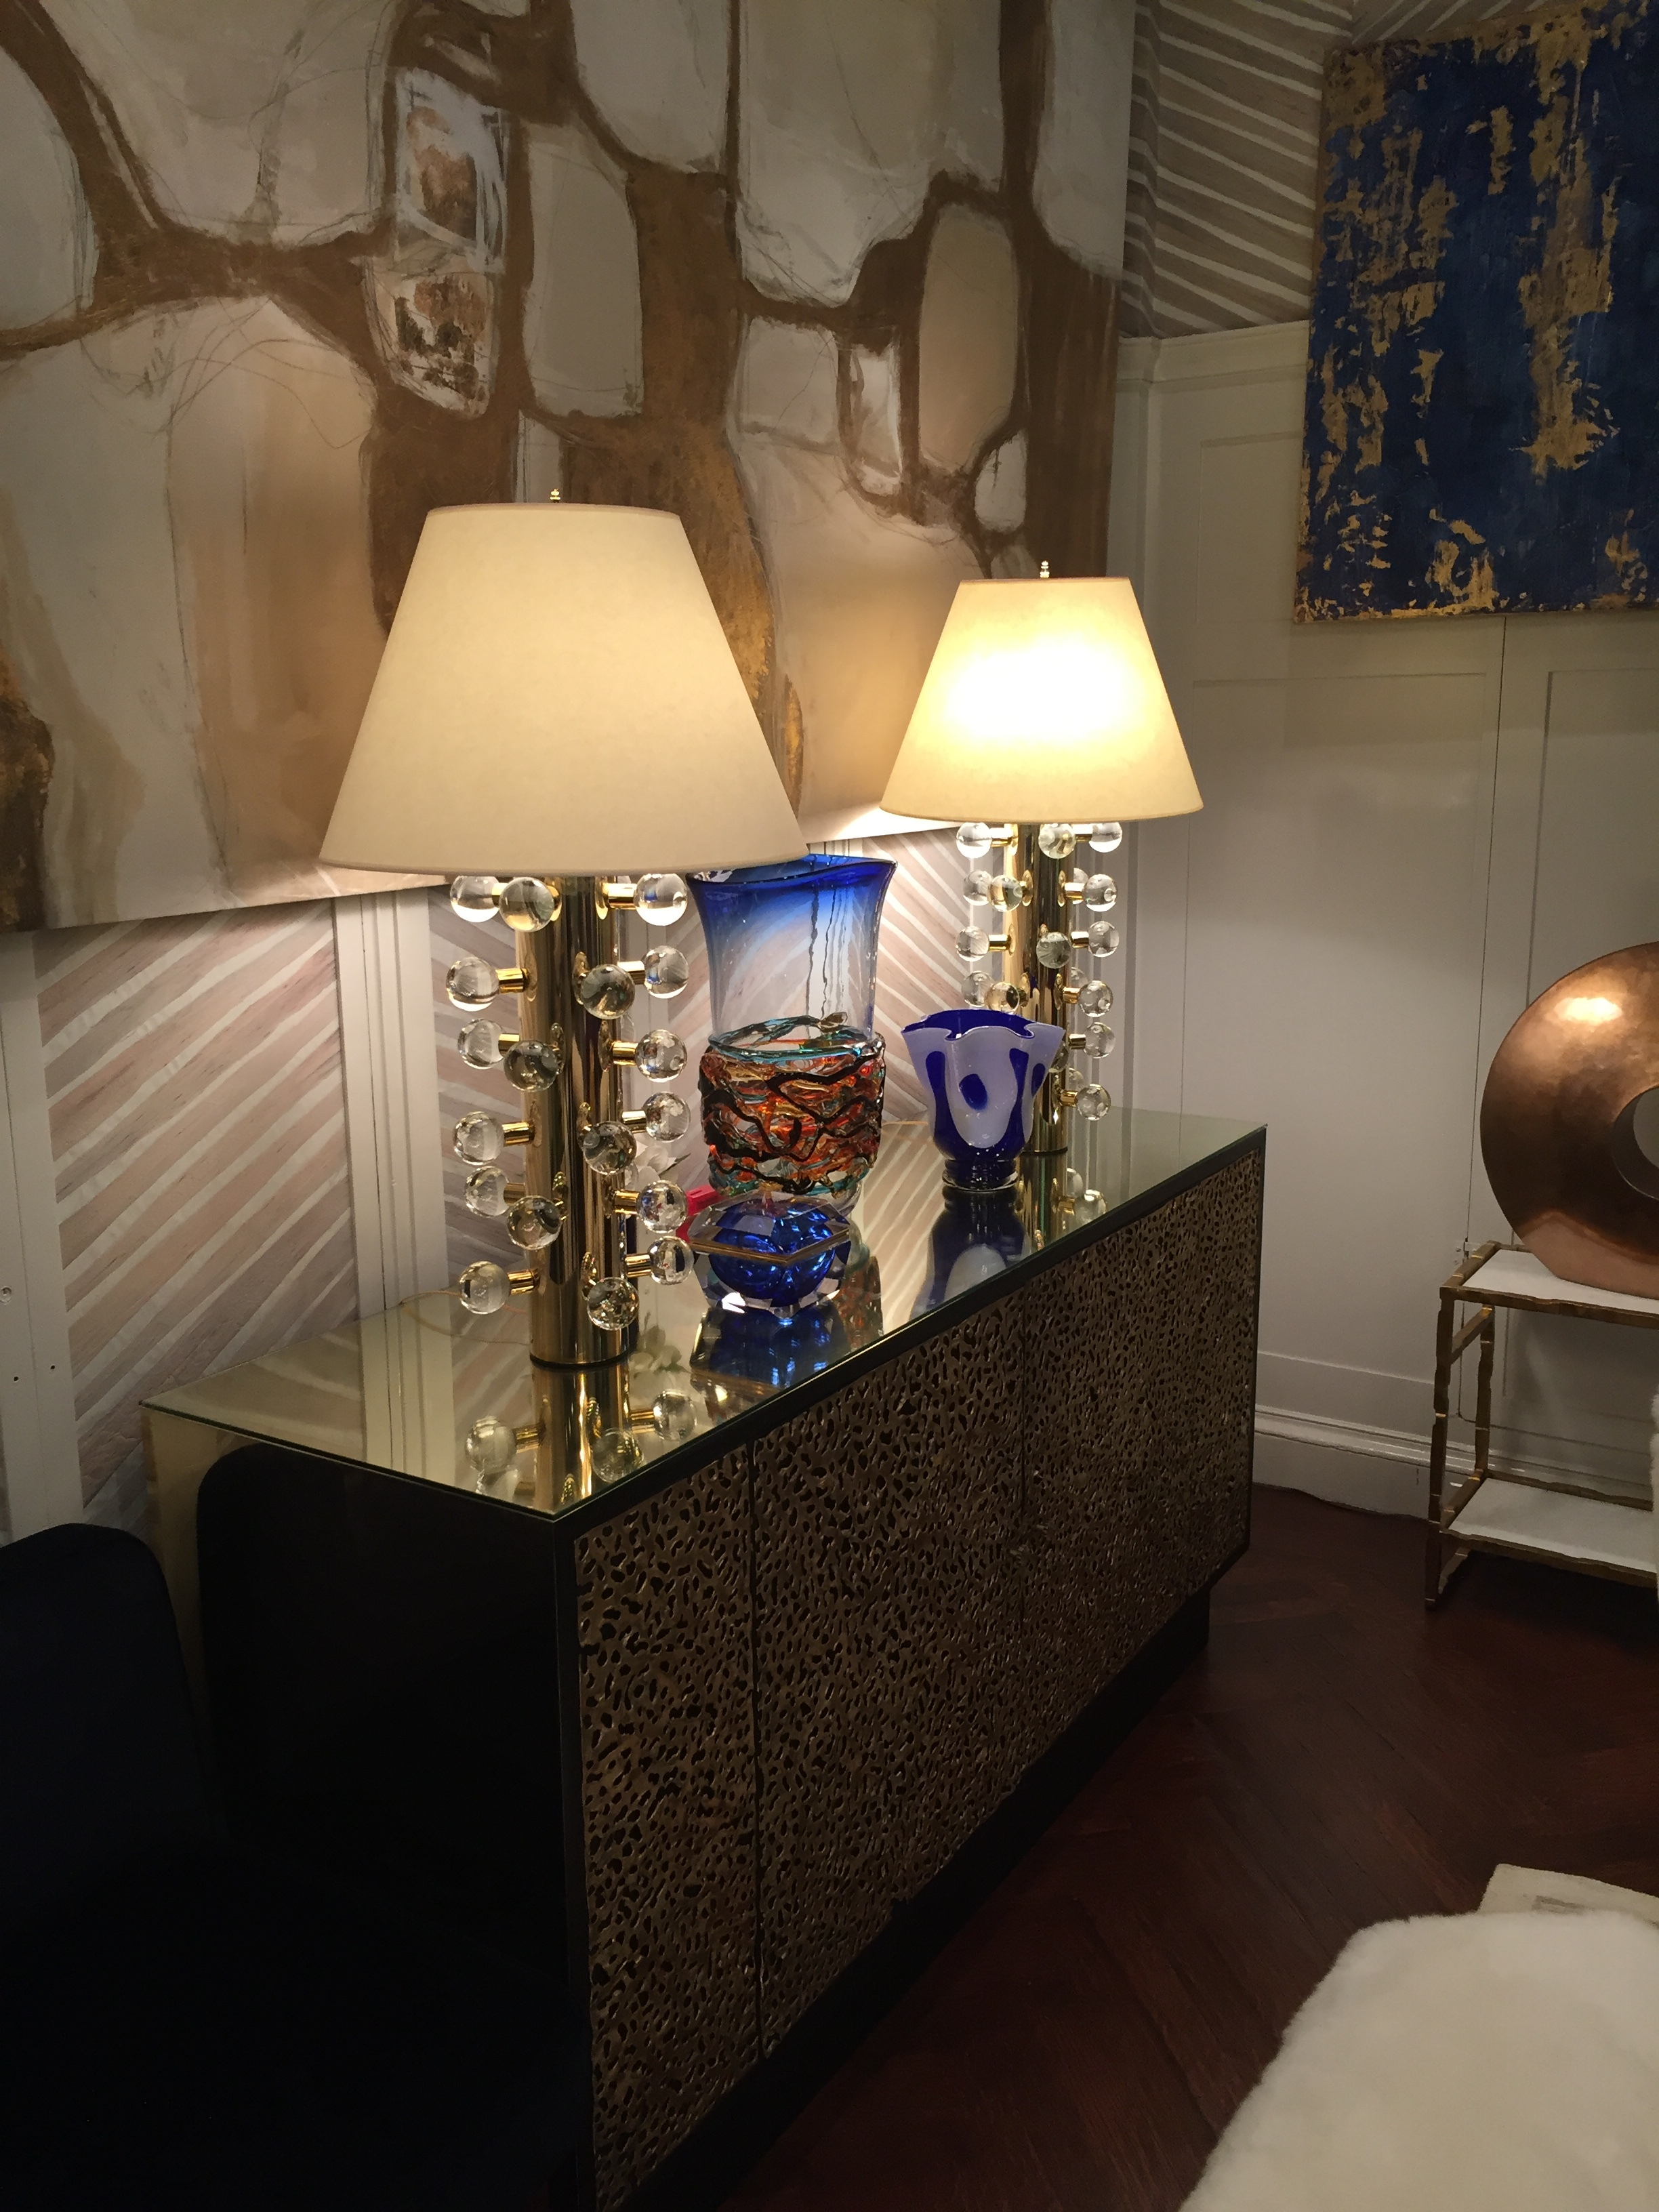 I thought these brass and lucite lamps in the same room were very funky too.